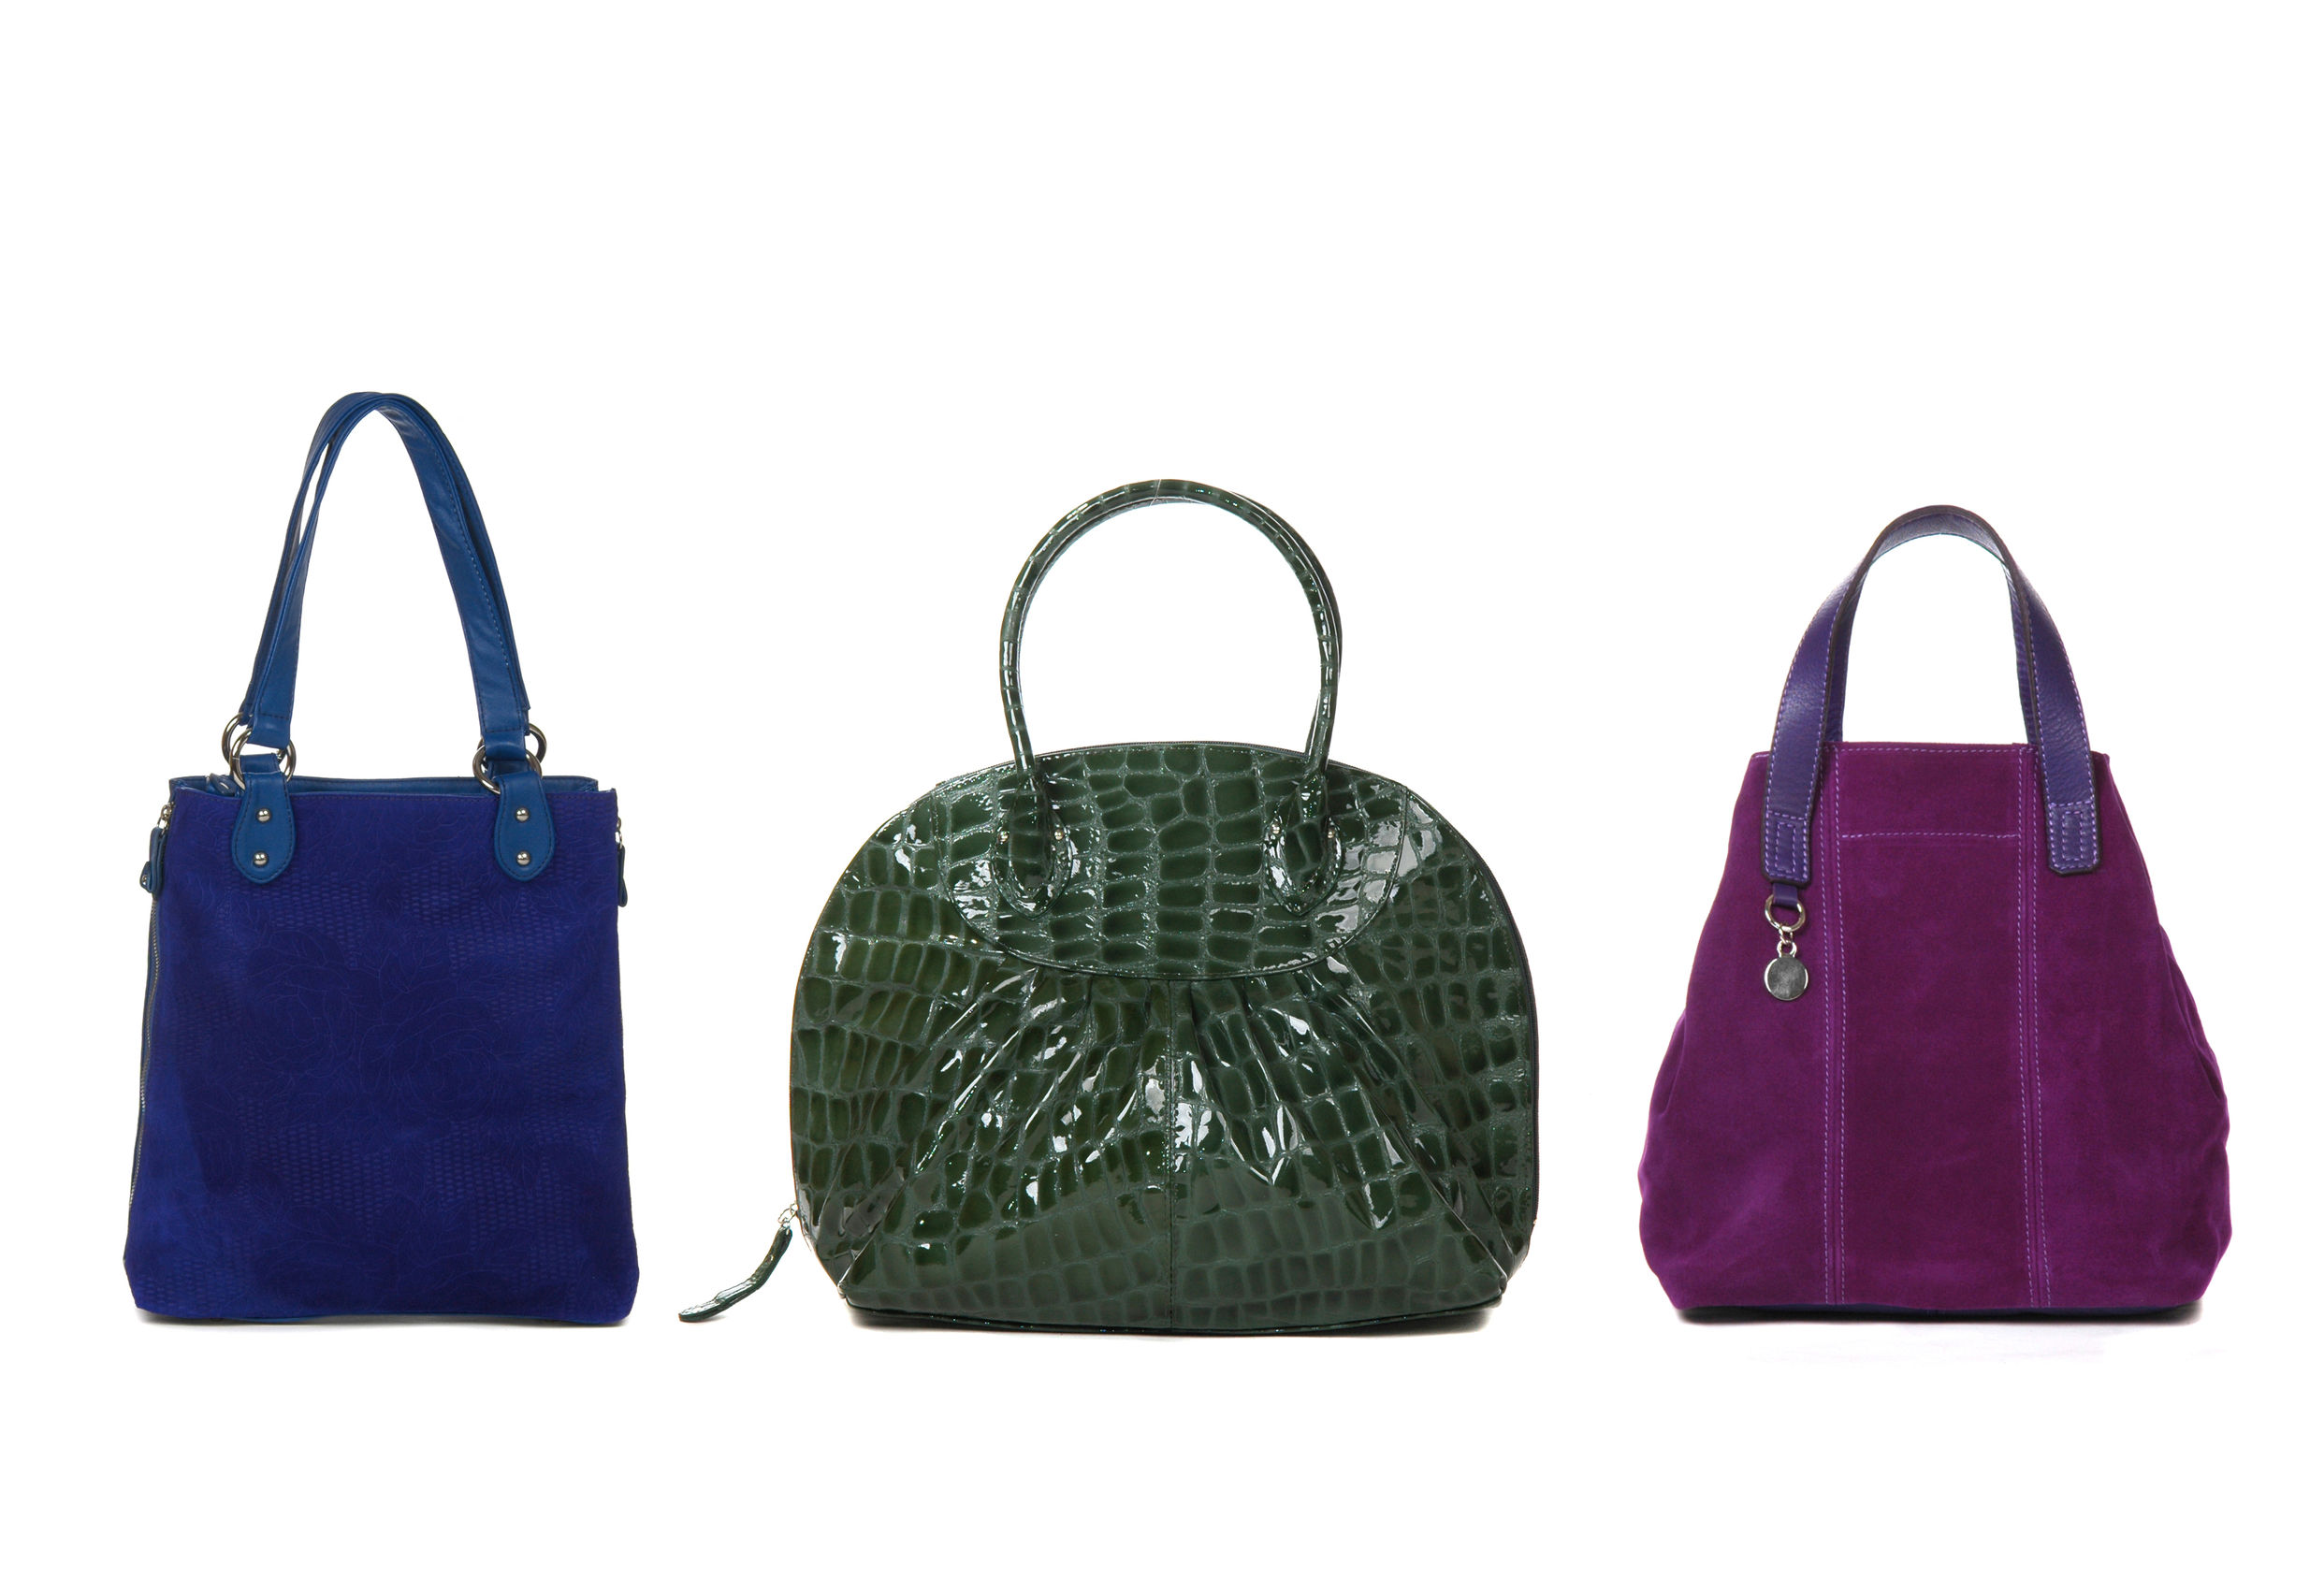 How To Choose The Best Handbag For Your Shape